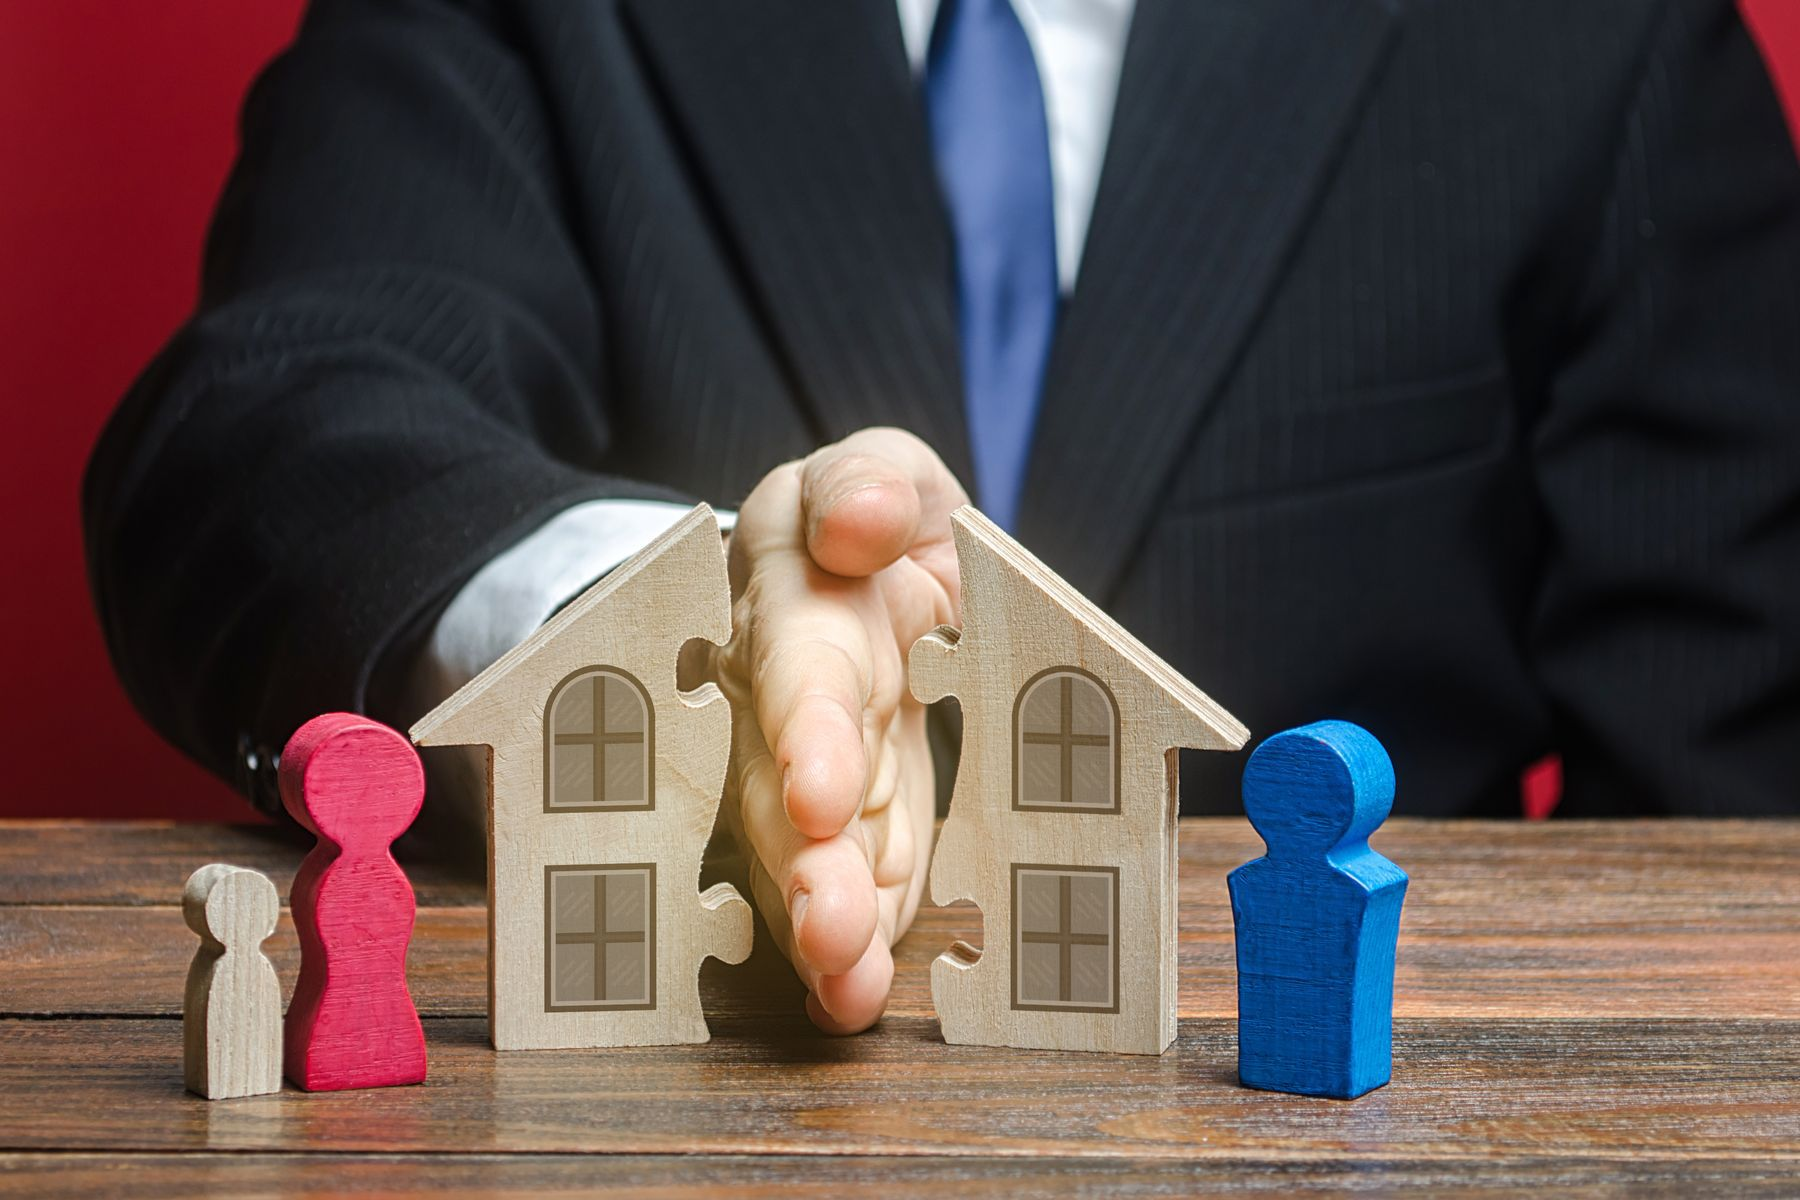 Will I Get to Keep My House and Car After My Divorce?